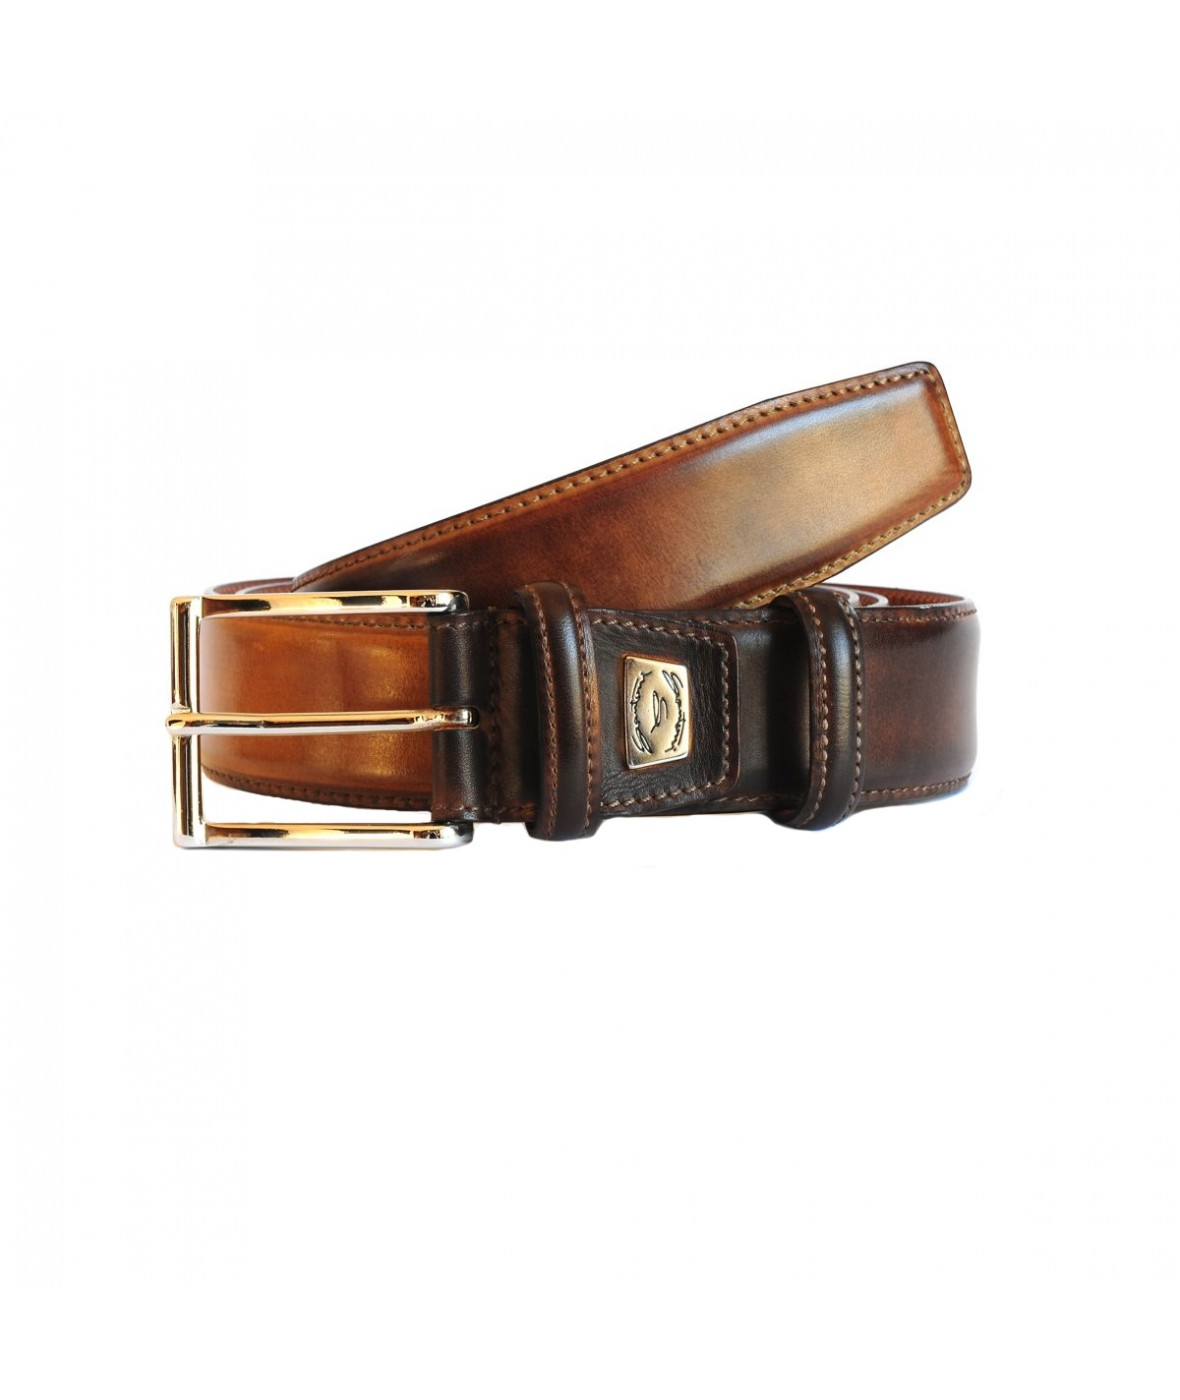 Santoni Belt Leather (387)